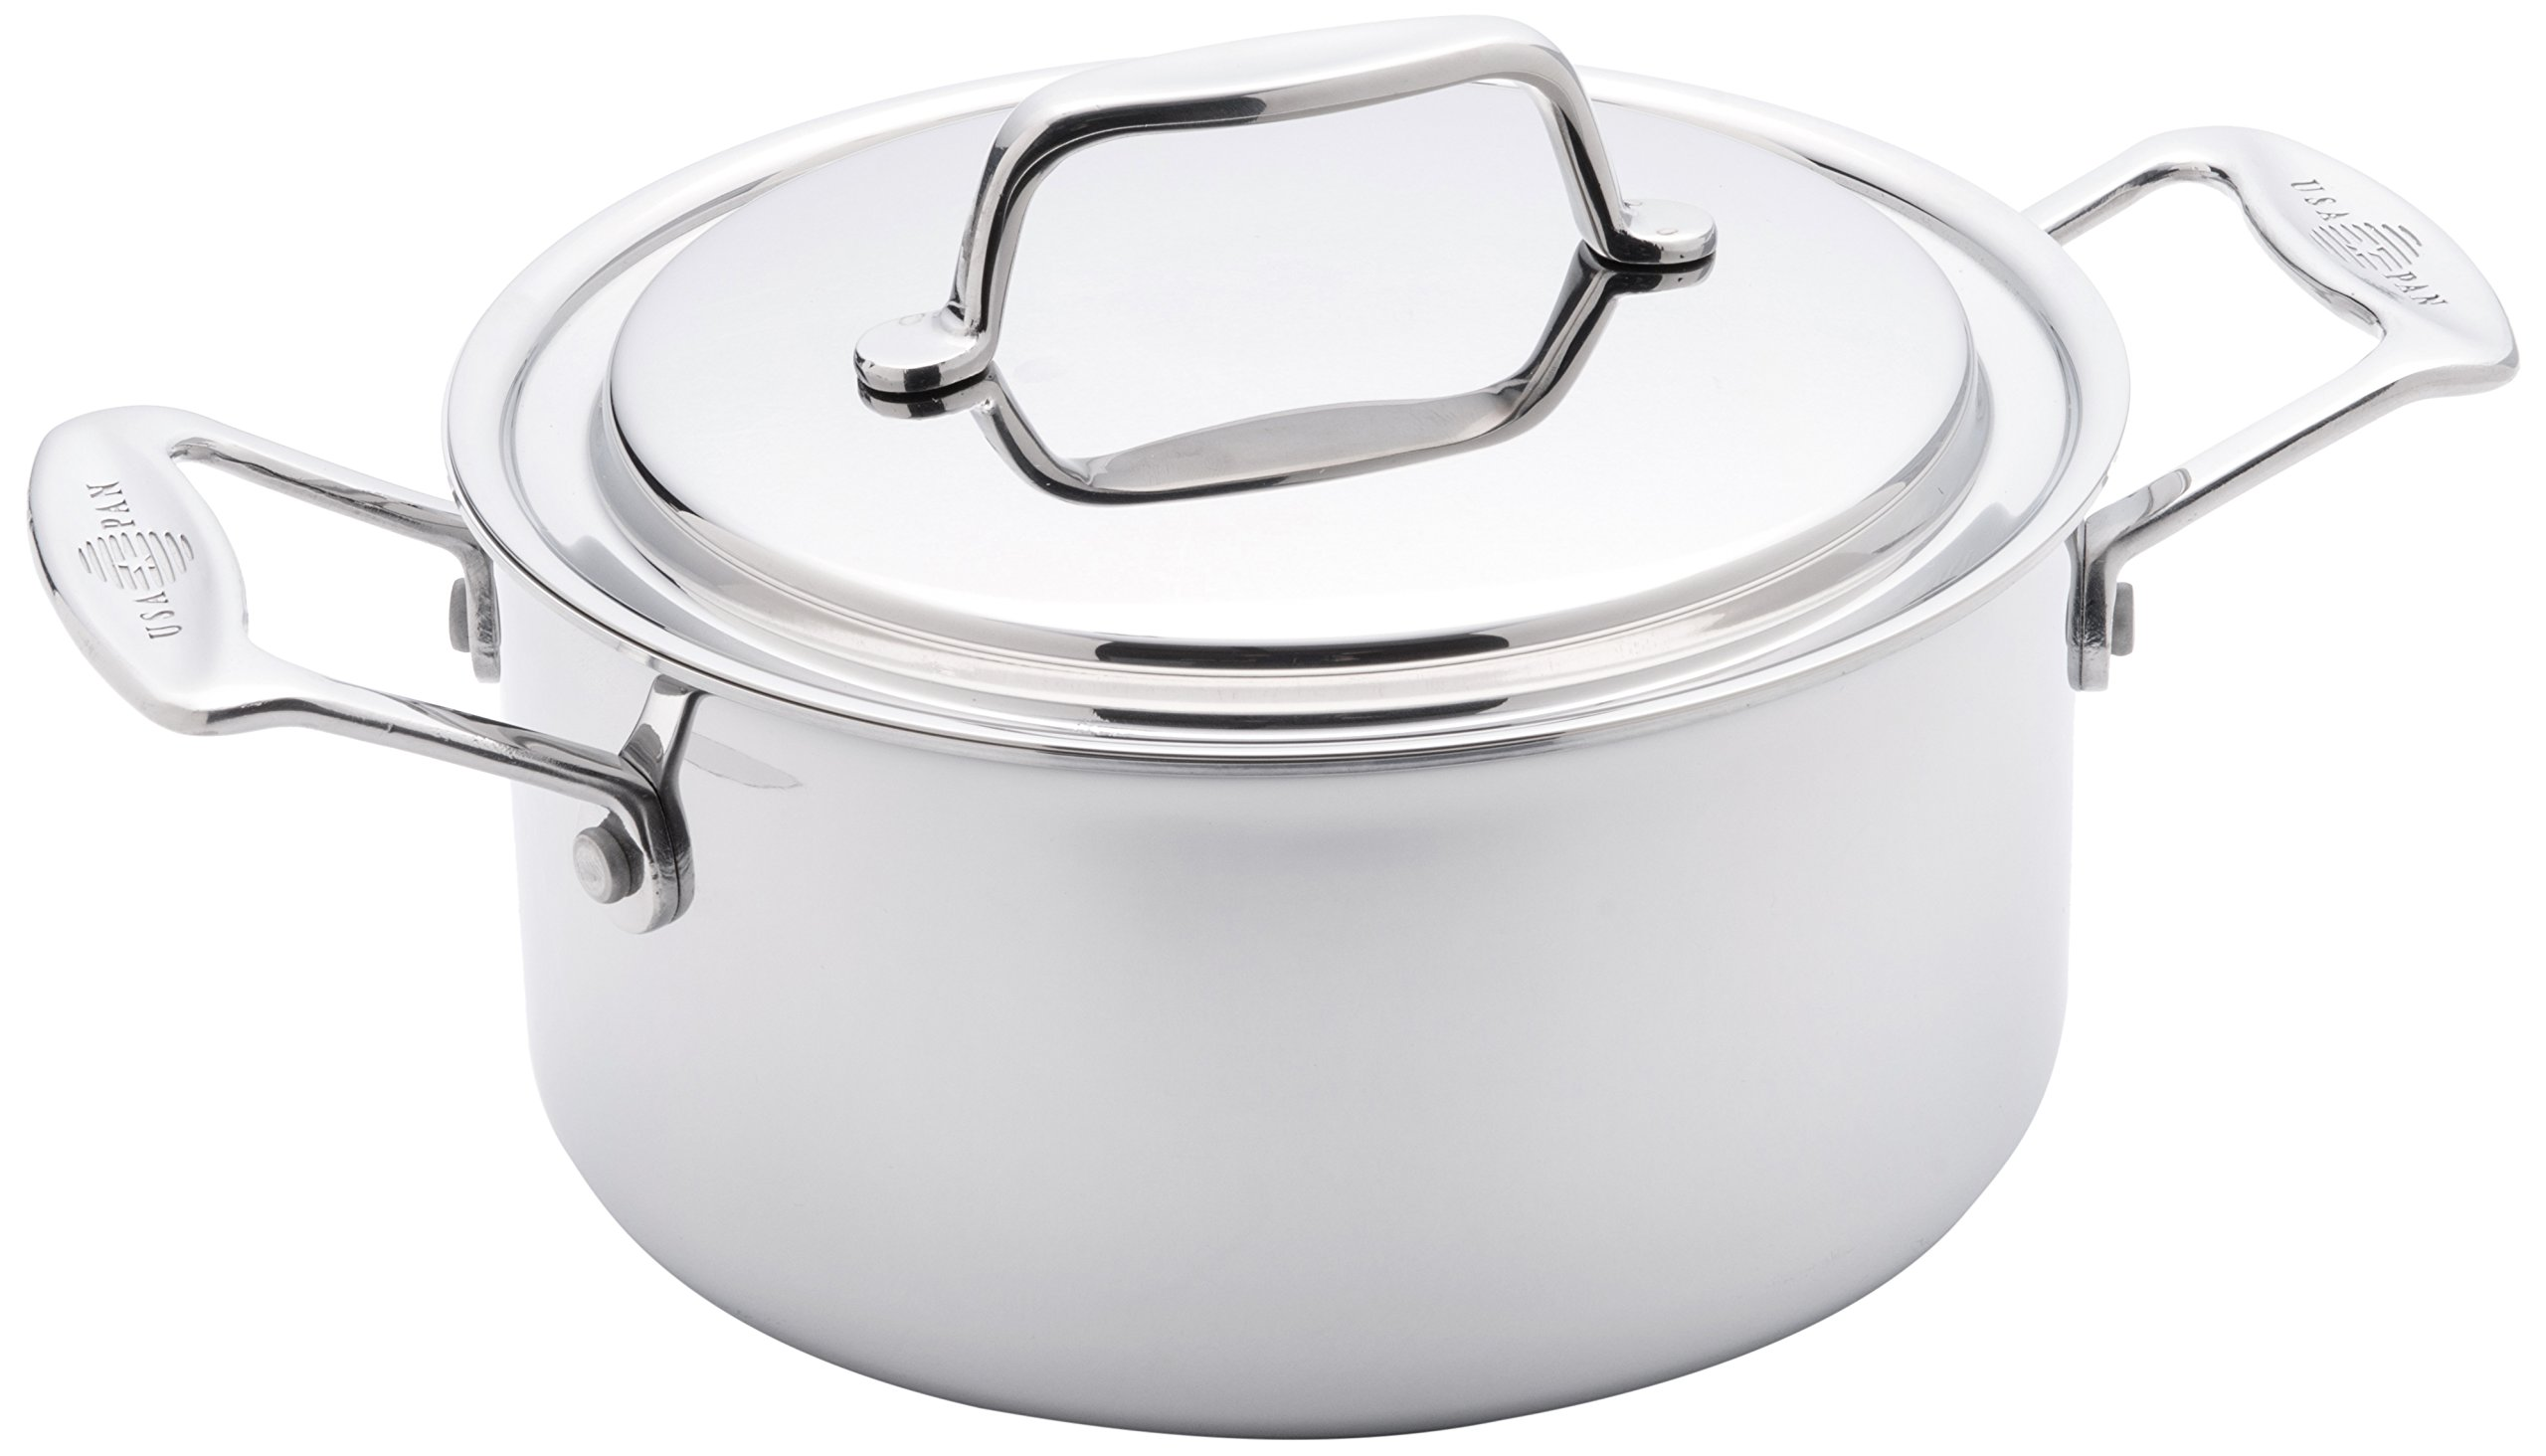 USA Pan Cookware 5-Ply Stainless Steel 3 Quart Stock Pot with Cover, Oven and Dishwasher Safe, Made in the USA